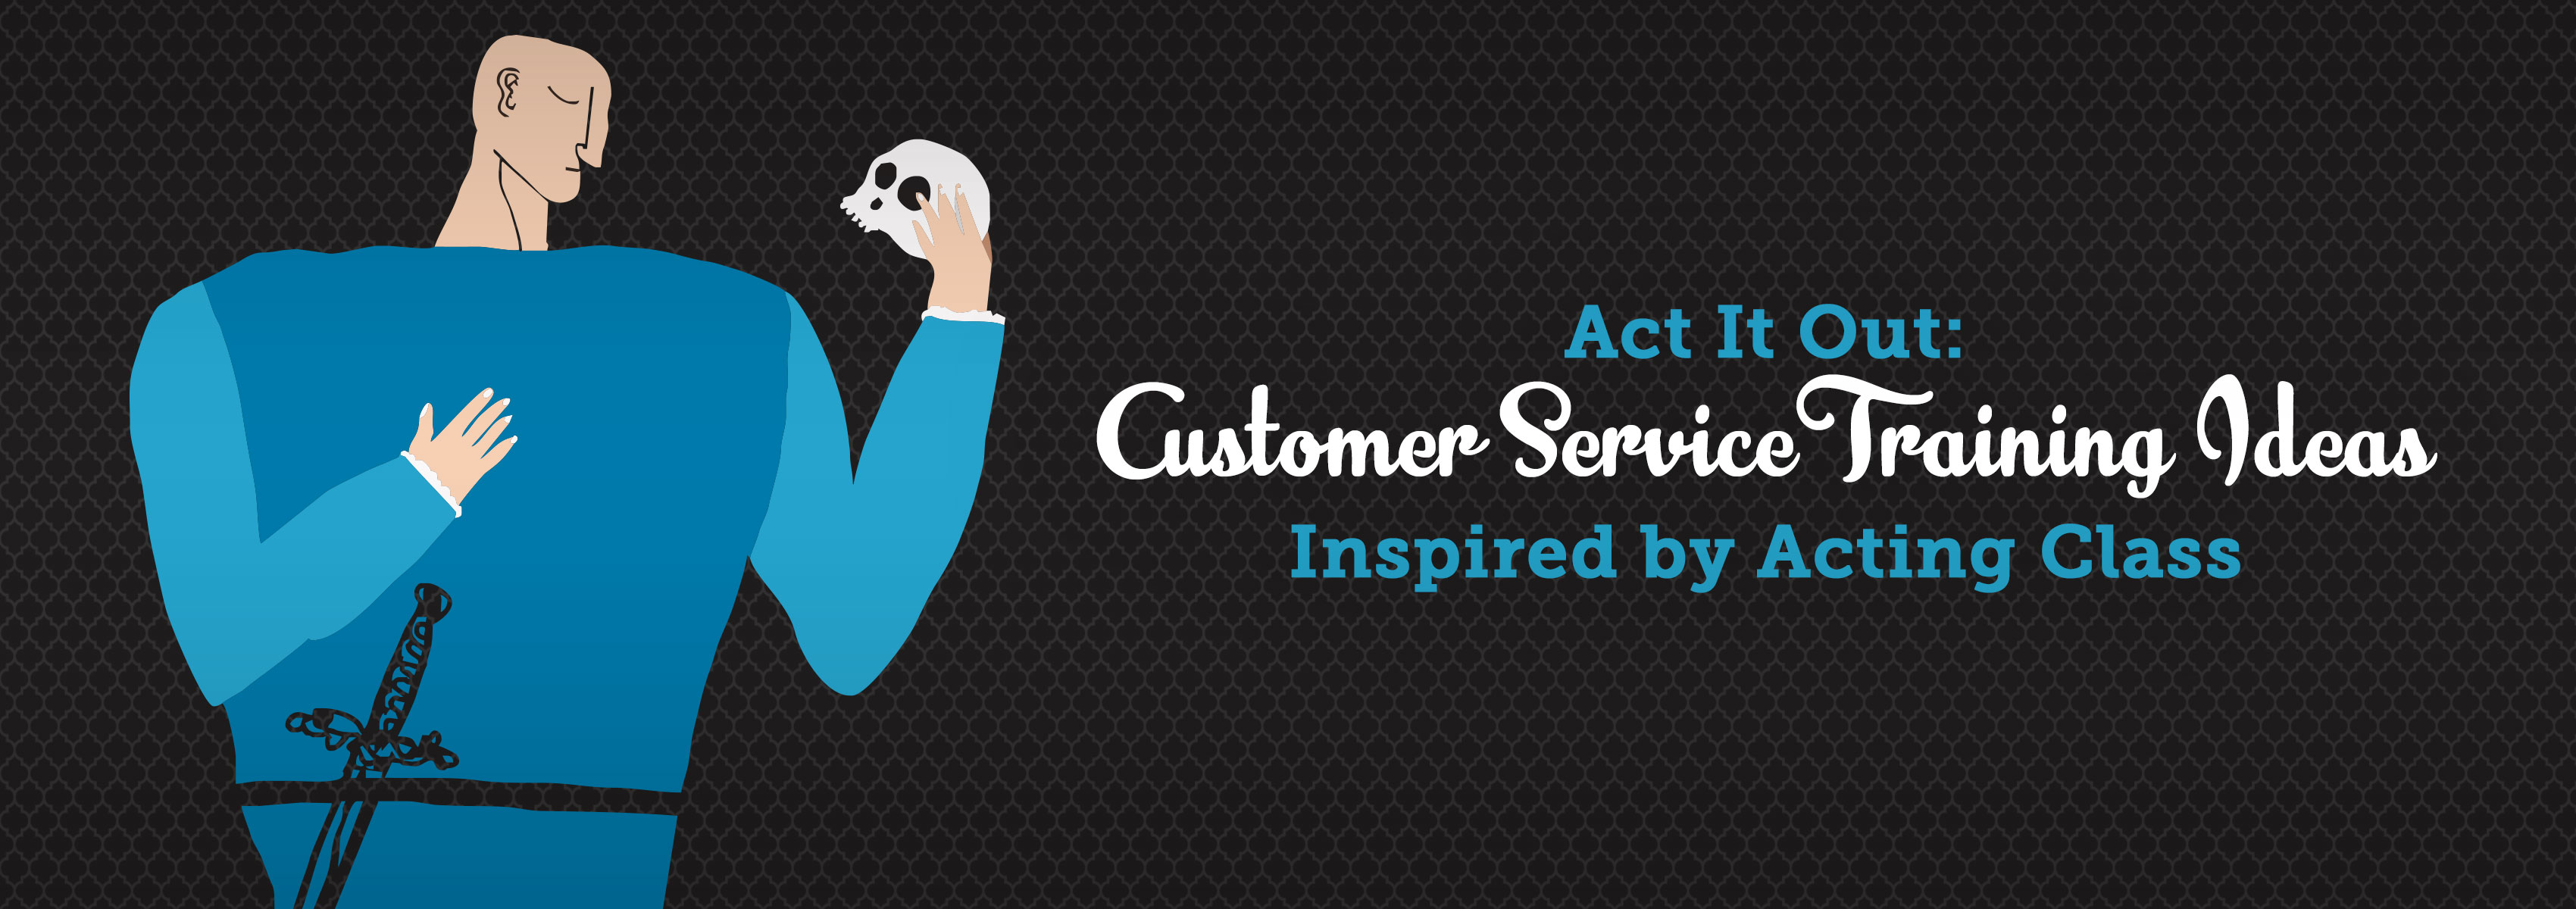 Act It Out: Customer Service Training Ideas Inspired by